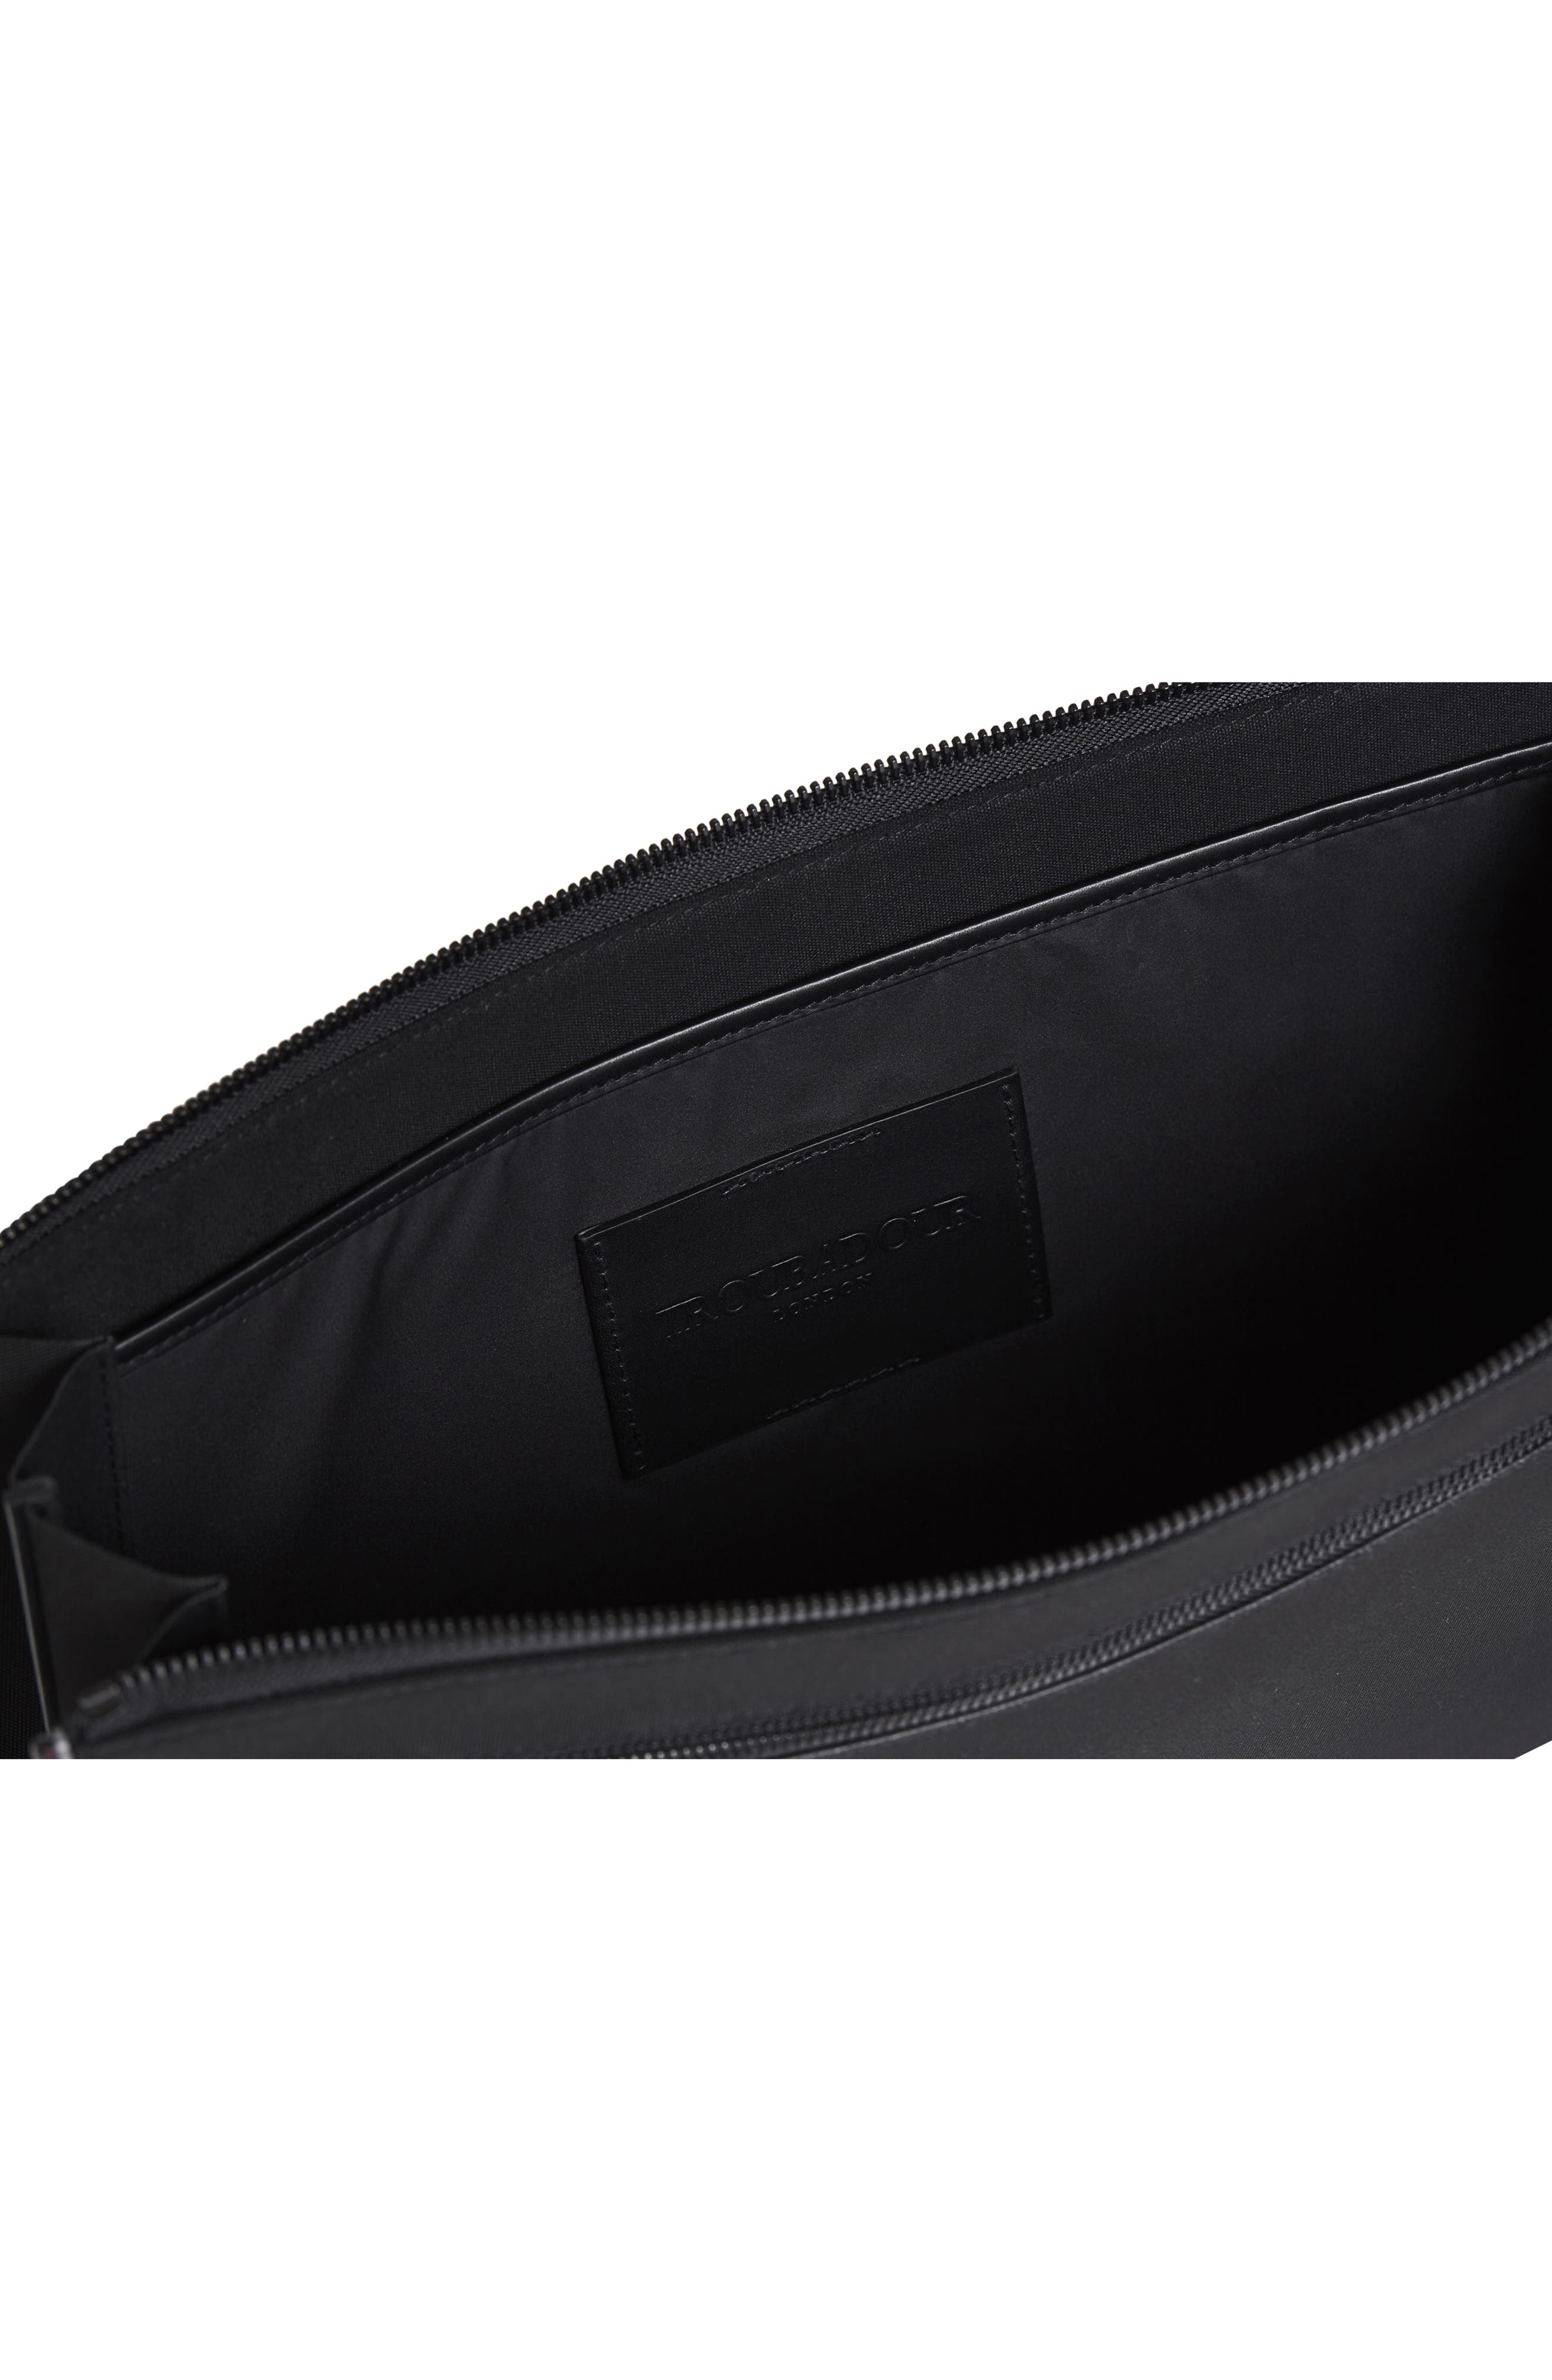 Portfolio Case,                             Alternate thumbnail 3, color,                             BLACK NYLON/ BLACK LEATHER